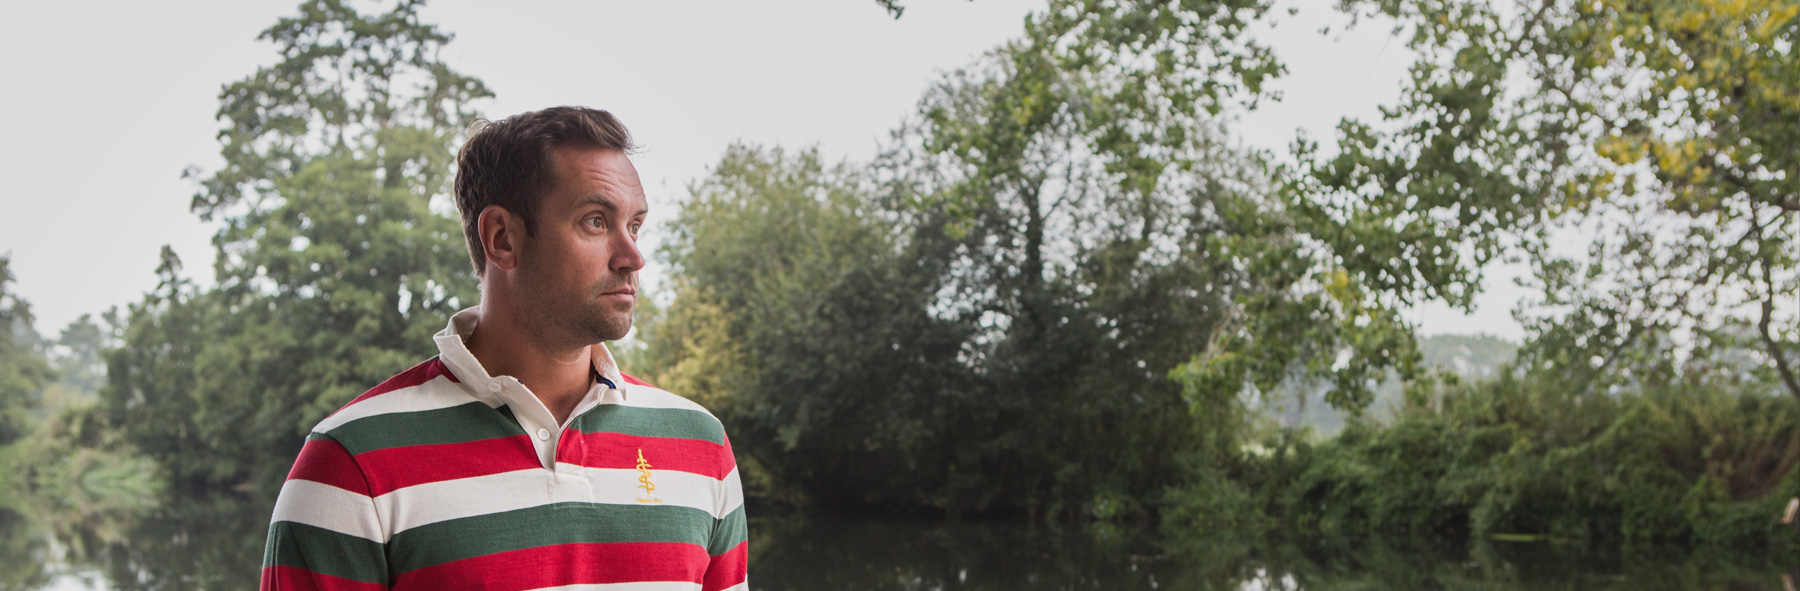 Gipsies rugby shirt model